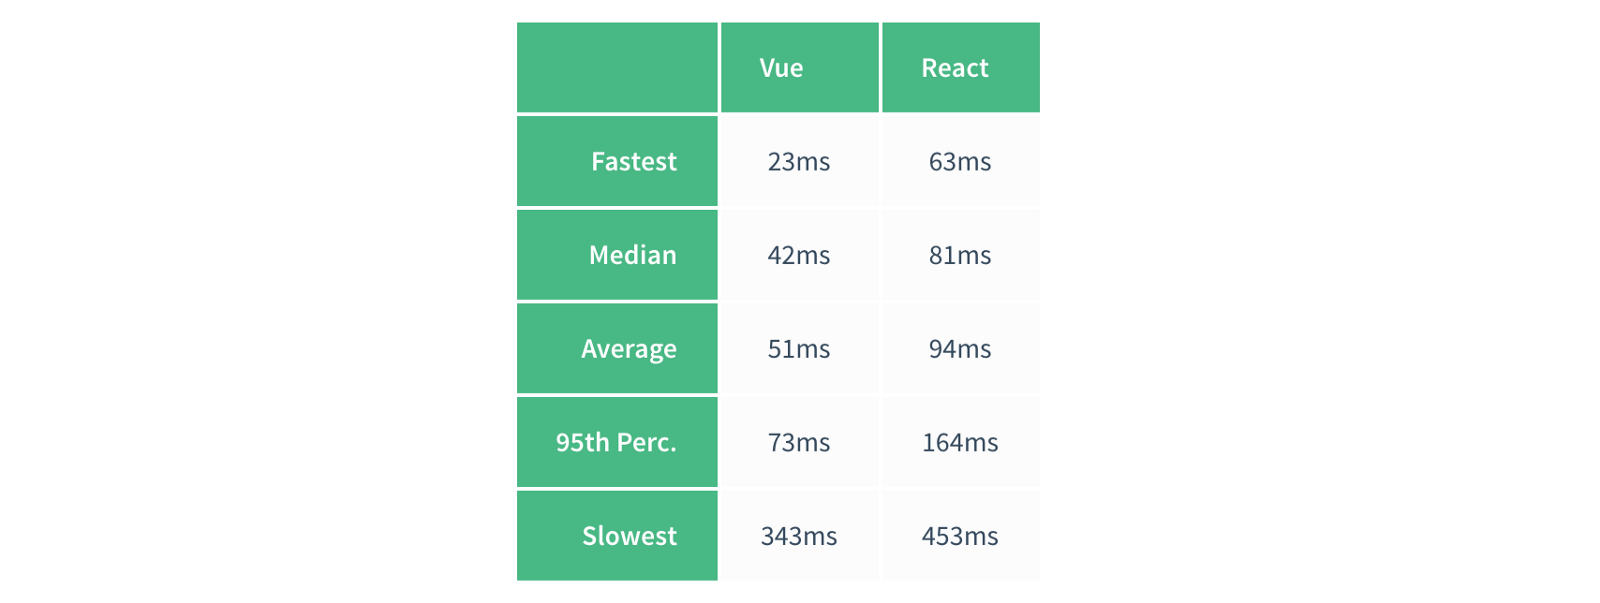 vue-vs-react